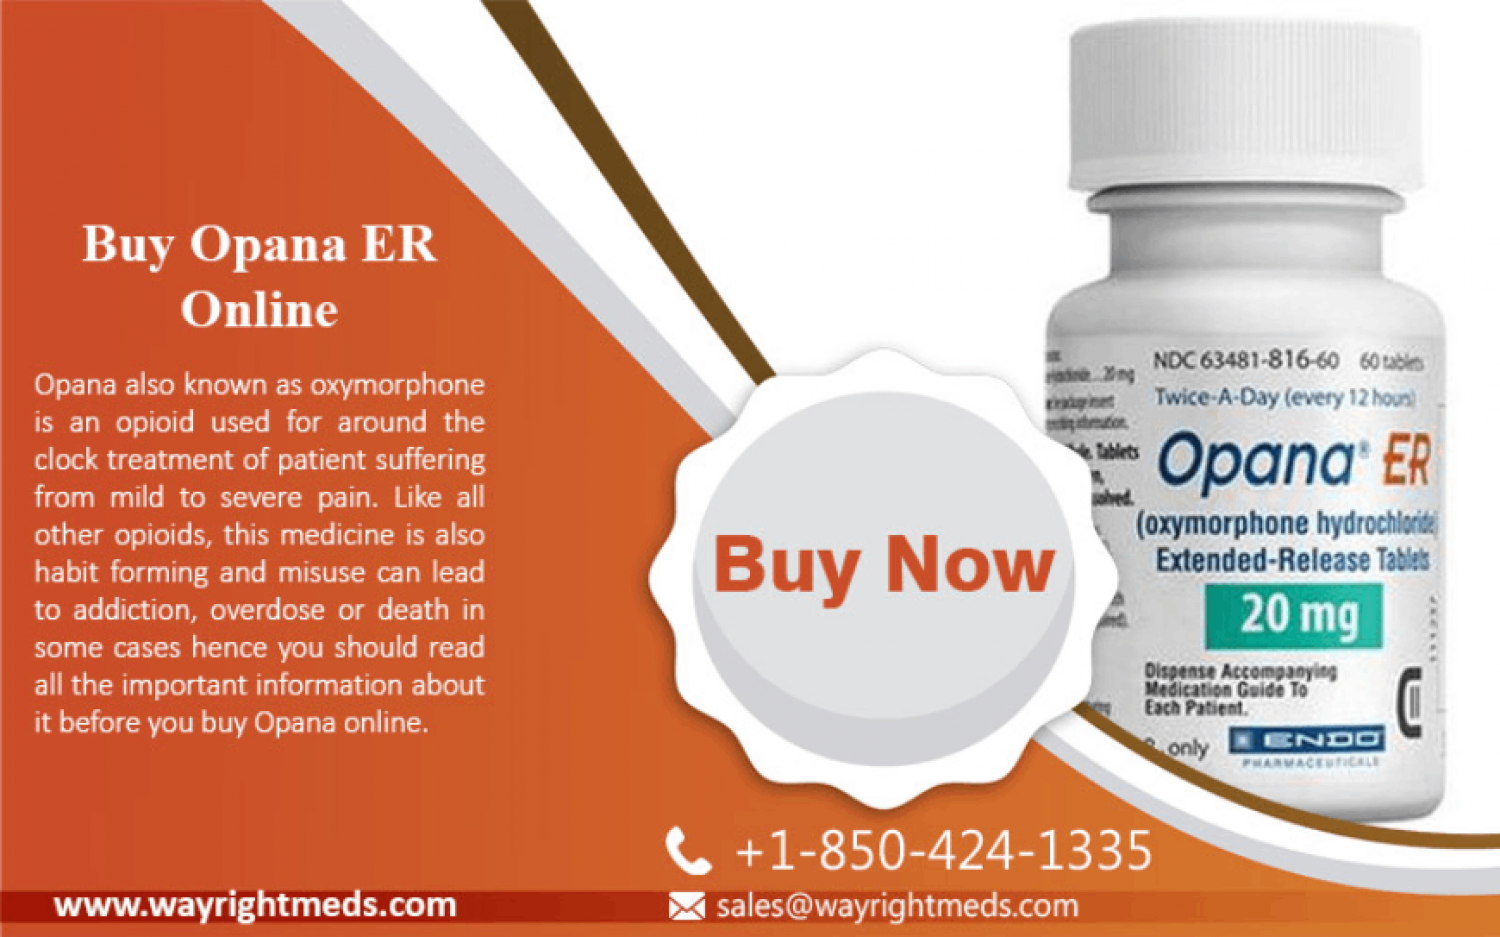 Buy Opana ER Online to Treat Severe Pain - Wayrightmeds.com Infographic